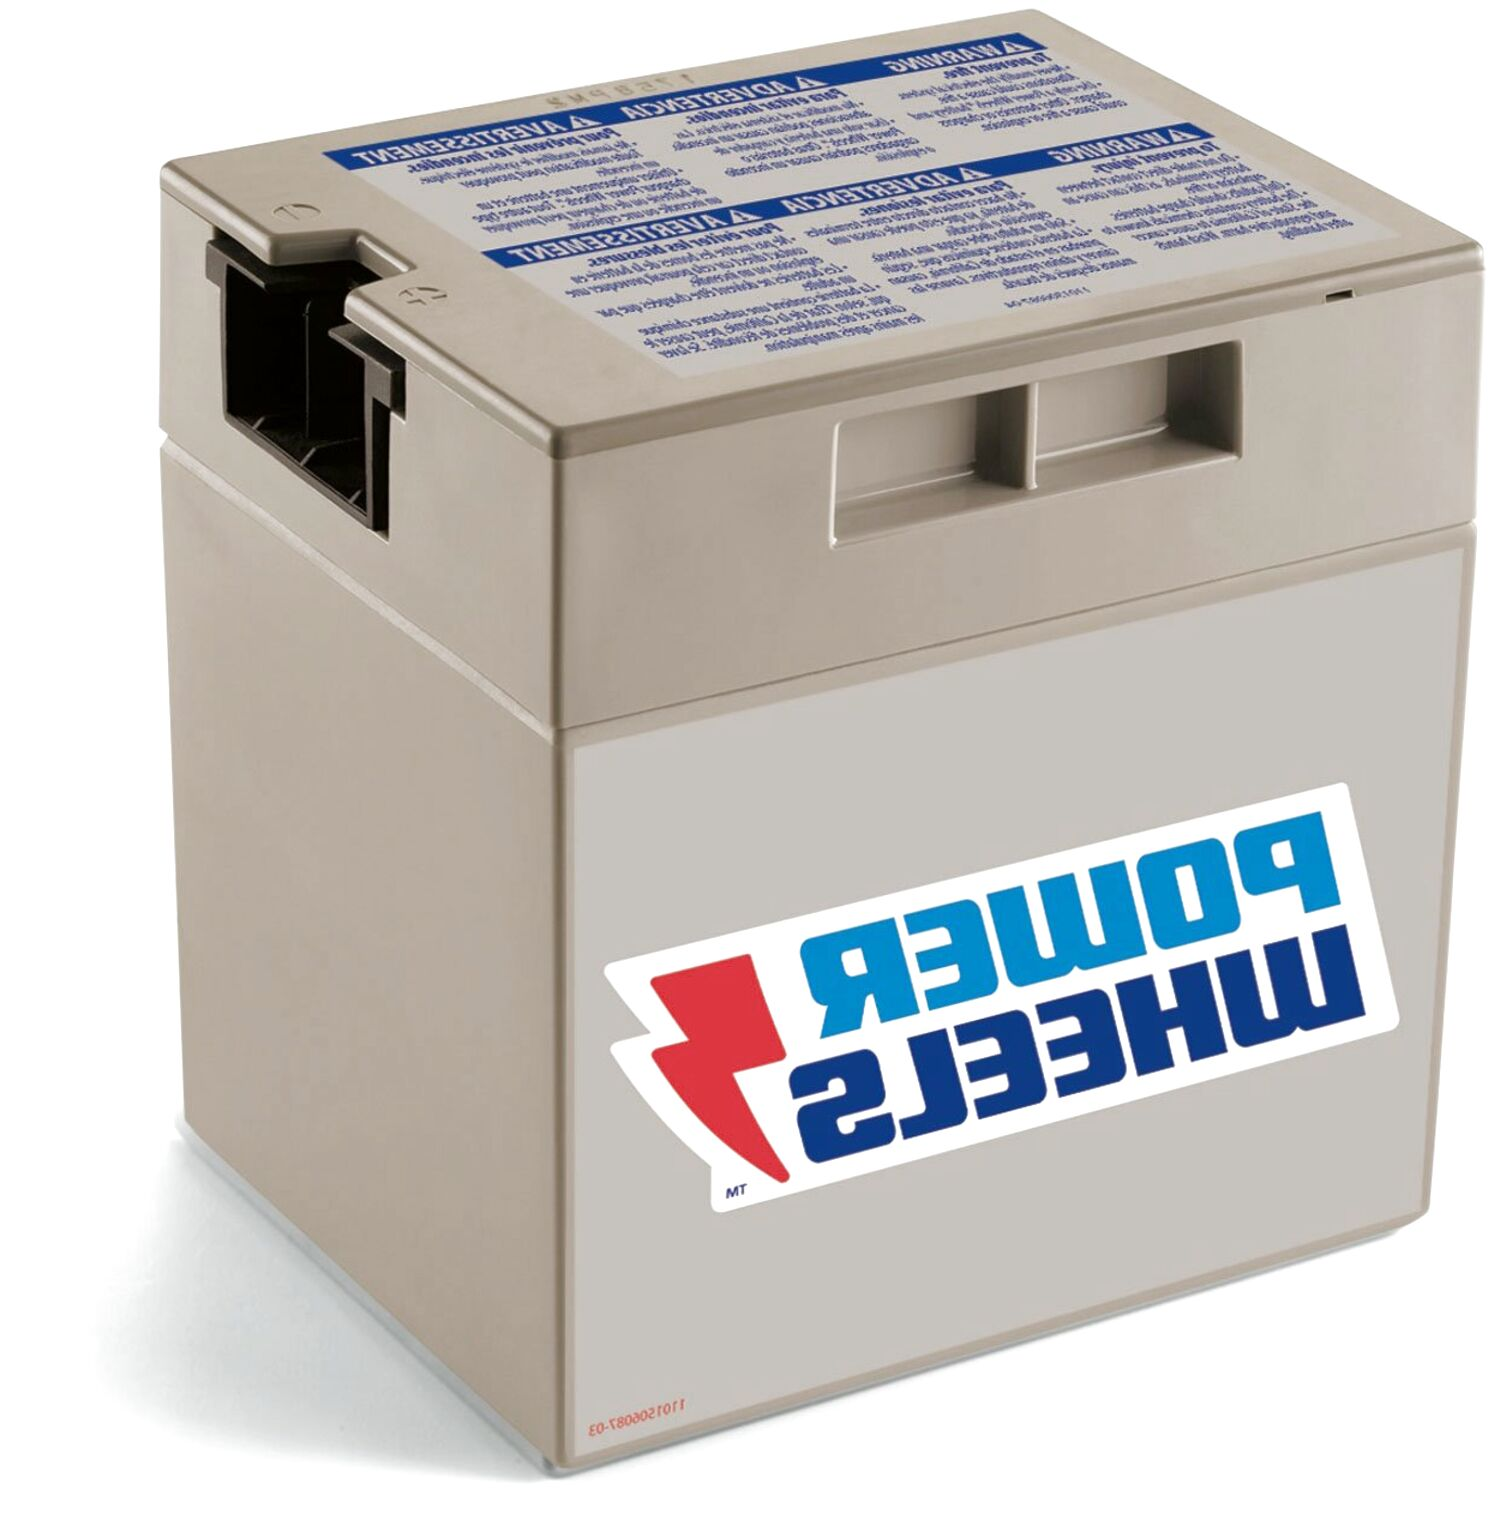 Power Wheels 12V Battery for sale in UK - View 20 ads